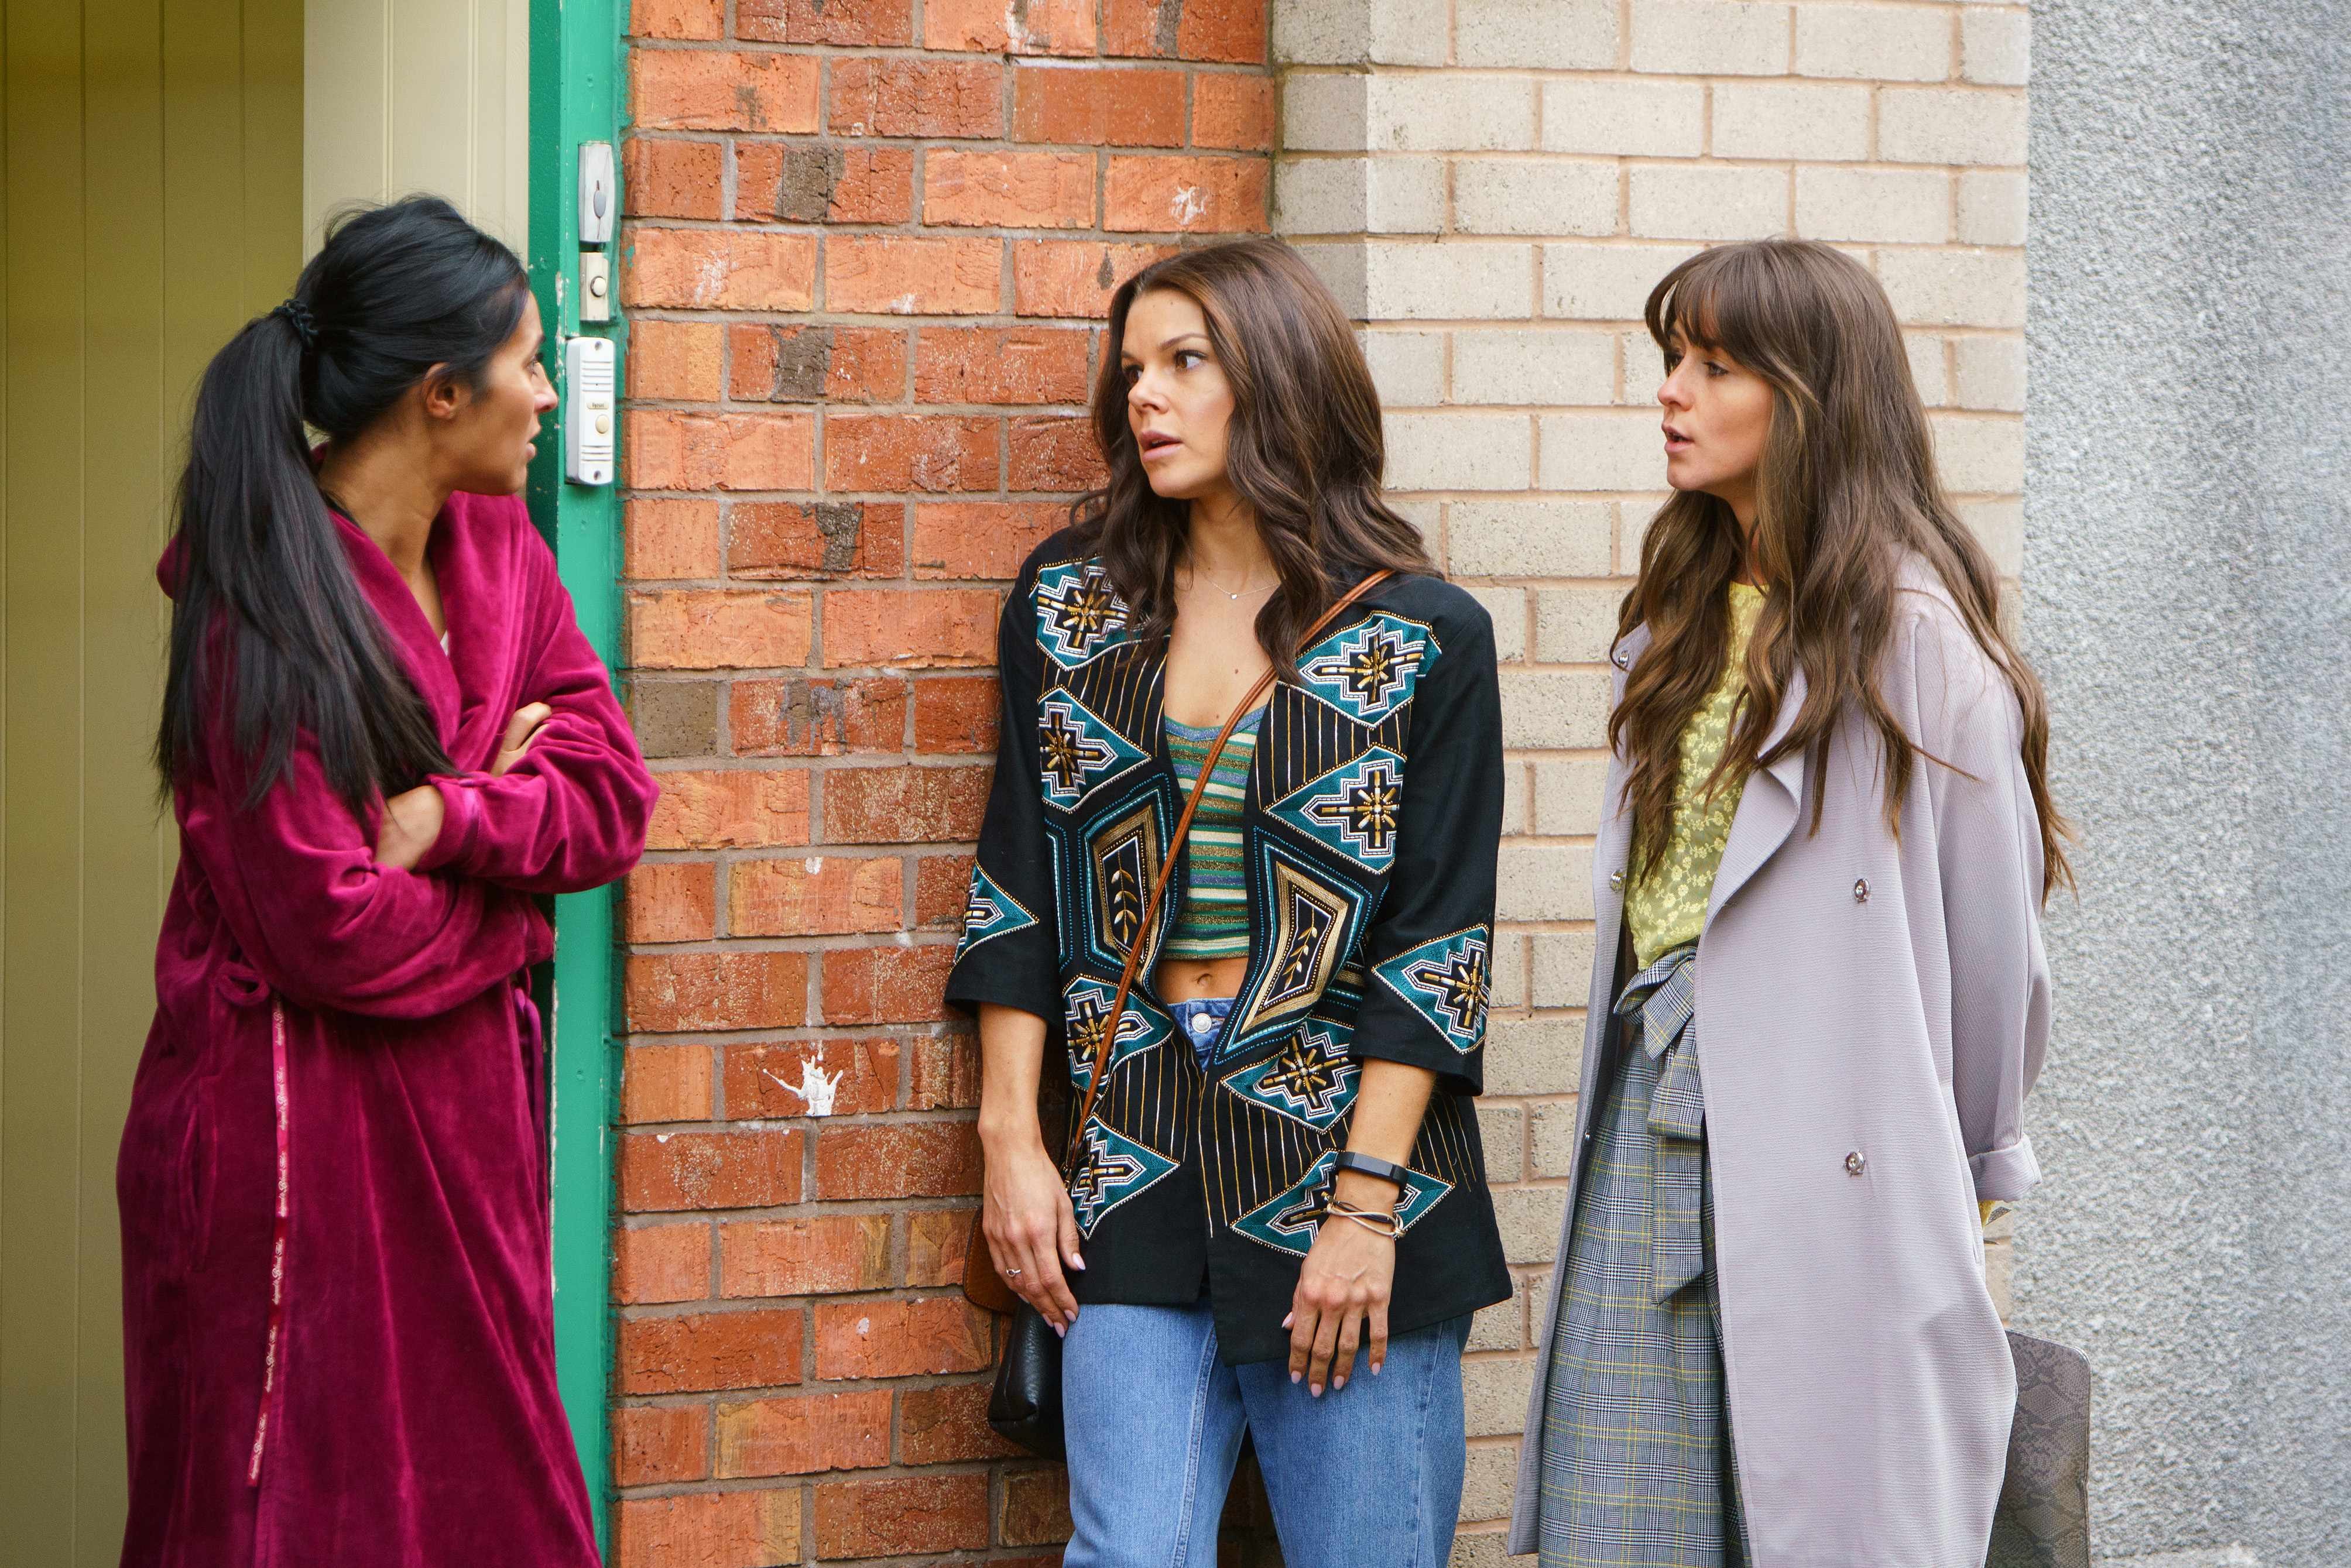 FROM ITV   STRICT EMBARGO  Print media - No Use Before Tuesday 2nd January 2018 Online Media -  No Use Before 0700hrs Tuesday 2nd January 2018  Coronation Street - Ep 9347  Monday 8th January 2018 - 1st Ep  Tipsy Kate Connor [FAYE BROOKES] and Sophie Webster [BROOKE VINCENT] arrive home from a night on the town which ends up in a doorstep snog Ð Also pictured Alya Nazir [SAIR KHAN].   Picture contact - david.crook@itv.com  Photographer - Mark Bruce  This photograph is (C) ITV Plc and can only be reproduced for editorial purposes directly in connection with the programme or event mentioned above, or ITV plc. Once made available by ITV plc Picture Desk, this photograph can be reproduced once only up until the transmission [TX] date and no reproduction fee will be charged. Any subsequent usage may incur a fee. This photograph must not be manipulated [excluding basic cropping] in a manner which alters the visual appearance of the person photographed deemed detrimental or inappropriate by ITV plc Picture Desk. This photograph must not be syndicated to any other company, publication or website, or permanently archived, without the express written permission of ITV Plc Picture Desk. Full Terms and conditions are available on the website www.itvpictures.com